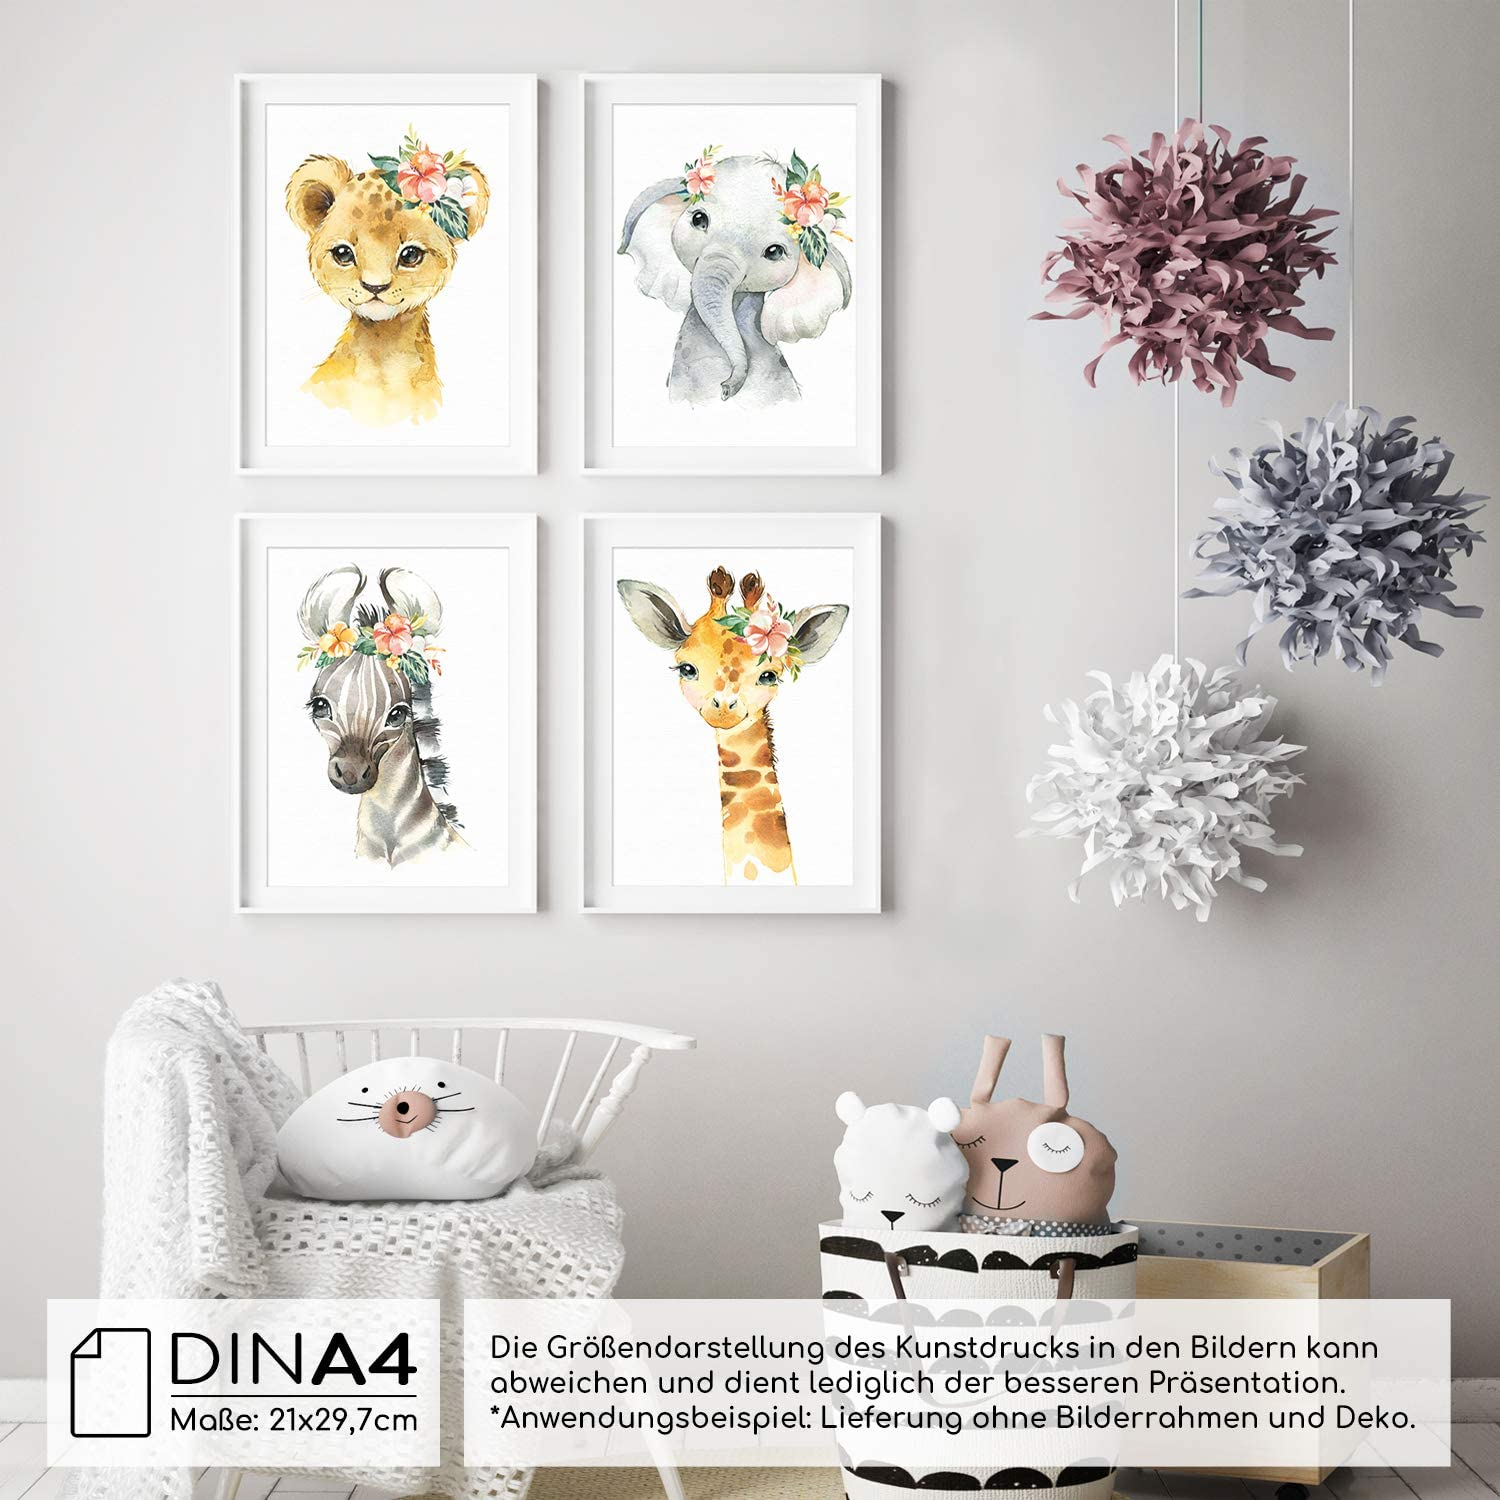 Farm Frechdax/® Set of 4 Childrens Room Posters A4 Pictures Baby Room Decorative Girl Boy A4-21x29,7cm Set of 4 Flowers Rabbit